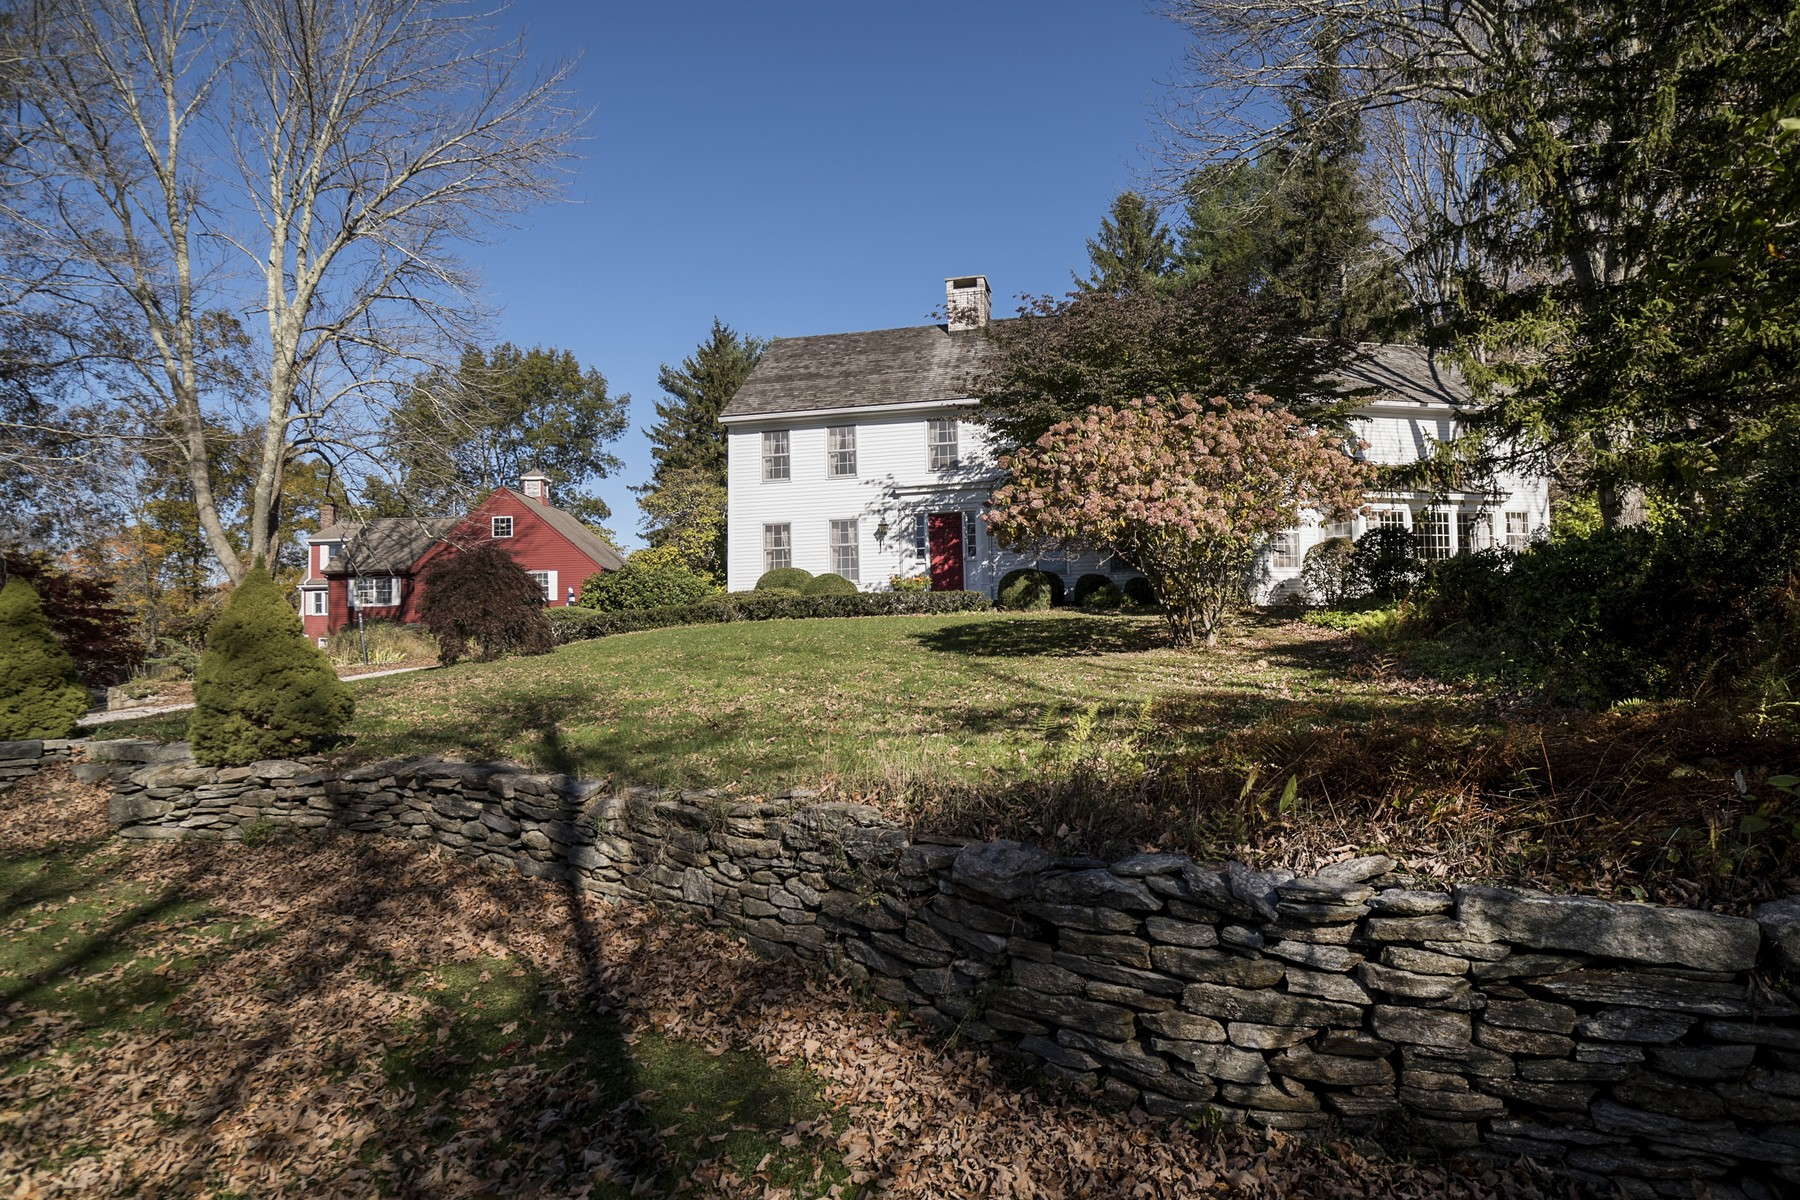 Single Family Home for Sale at 75d Reutemann Rd North Stonington, Connecticut 06359 United States